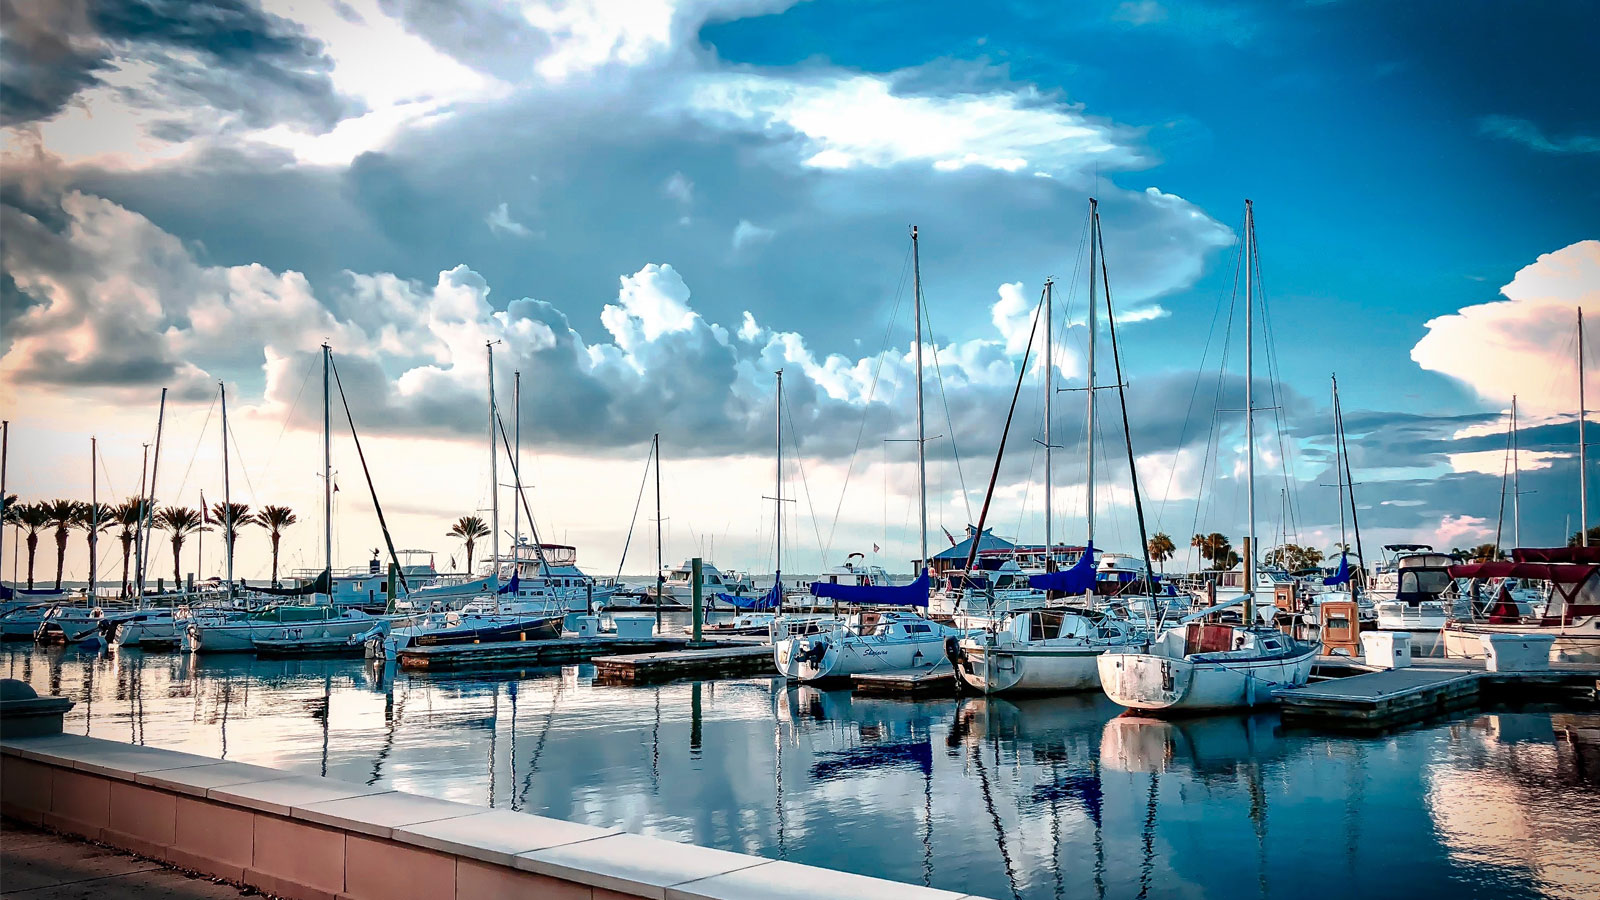 Marina in Sanford, Florida, United States